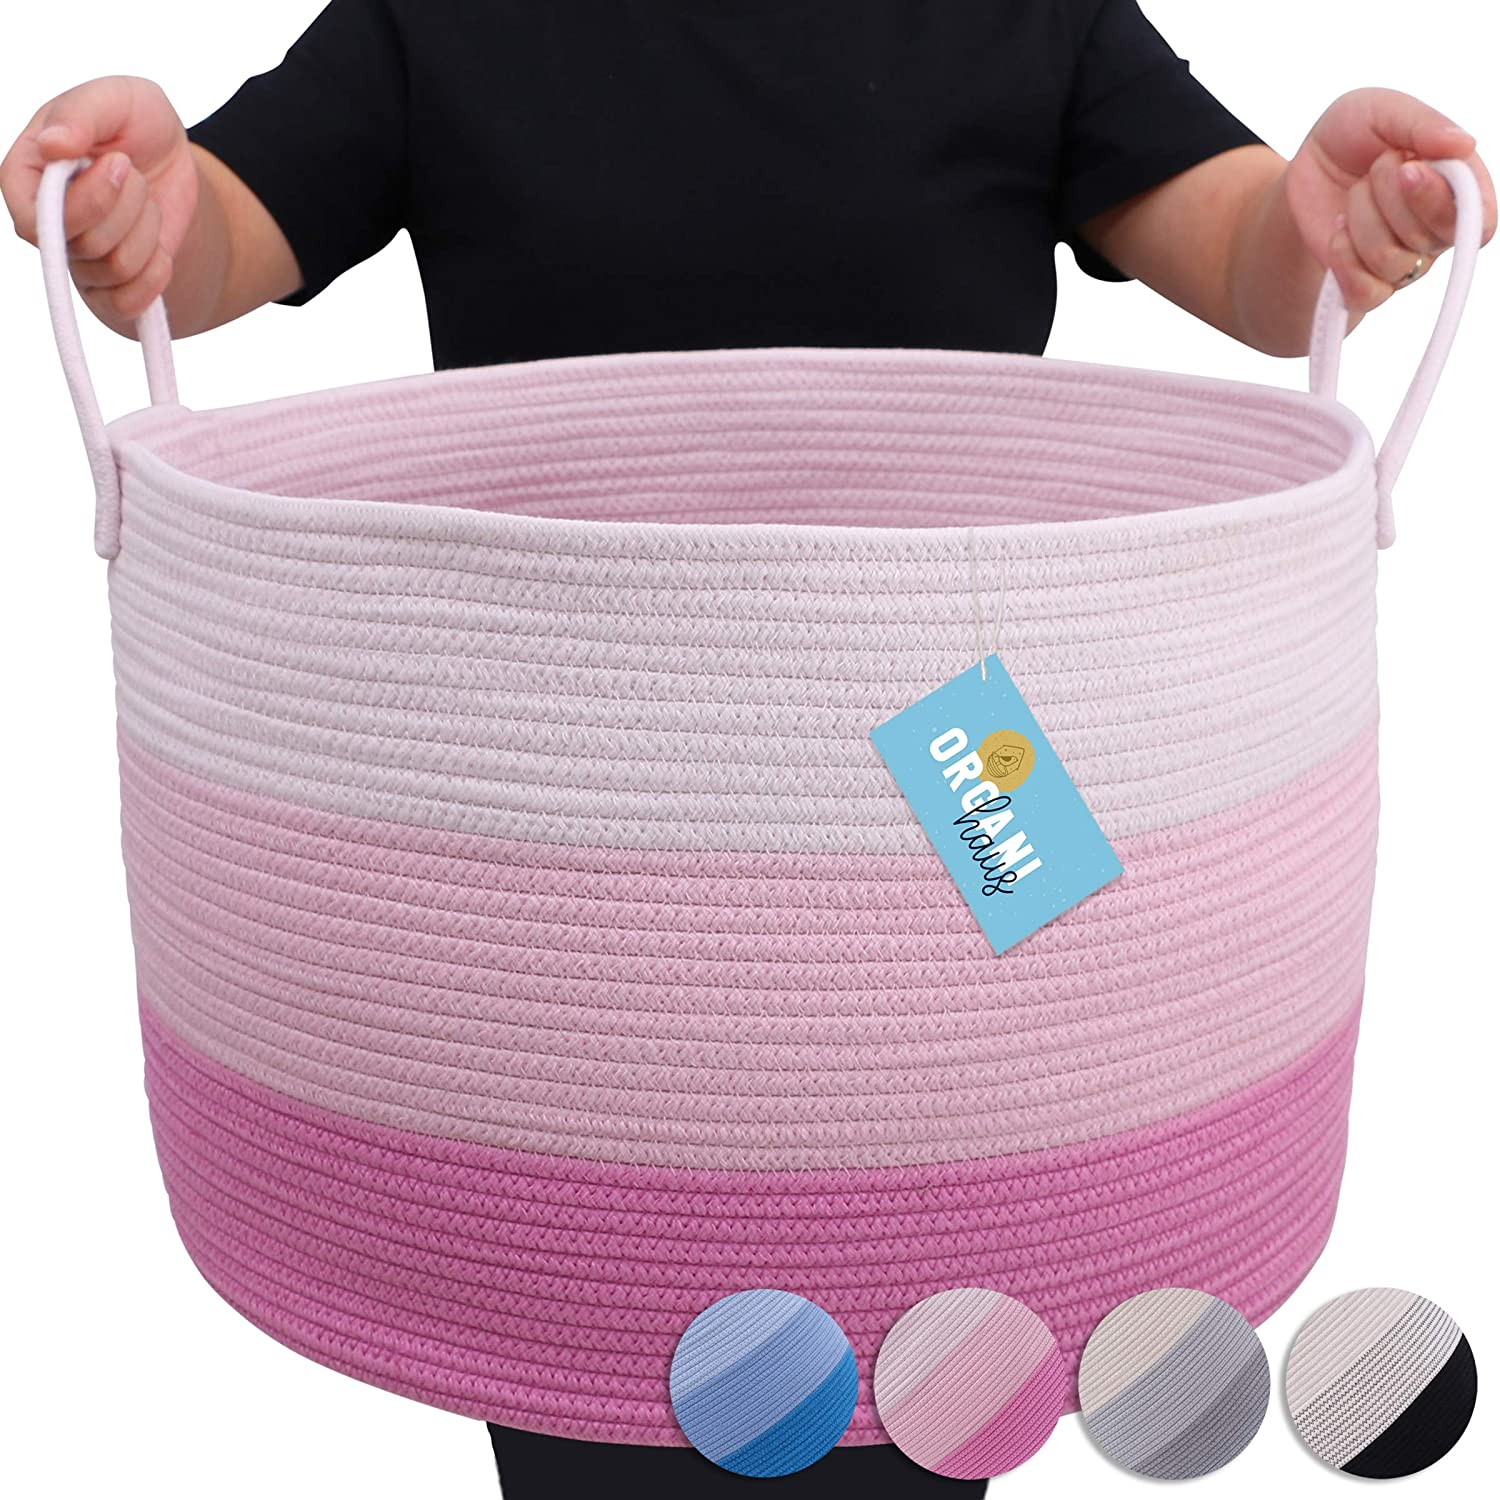 """OrganiHaus 3-Toned Cotton Rope Storage Baskets for Laundry and Blankets (Wide (20""""x13.3""""), 3-Toned Pink)"""